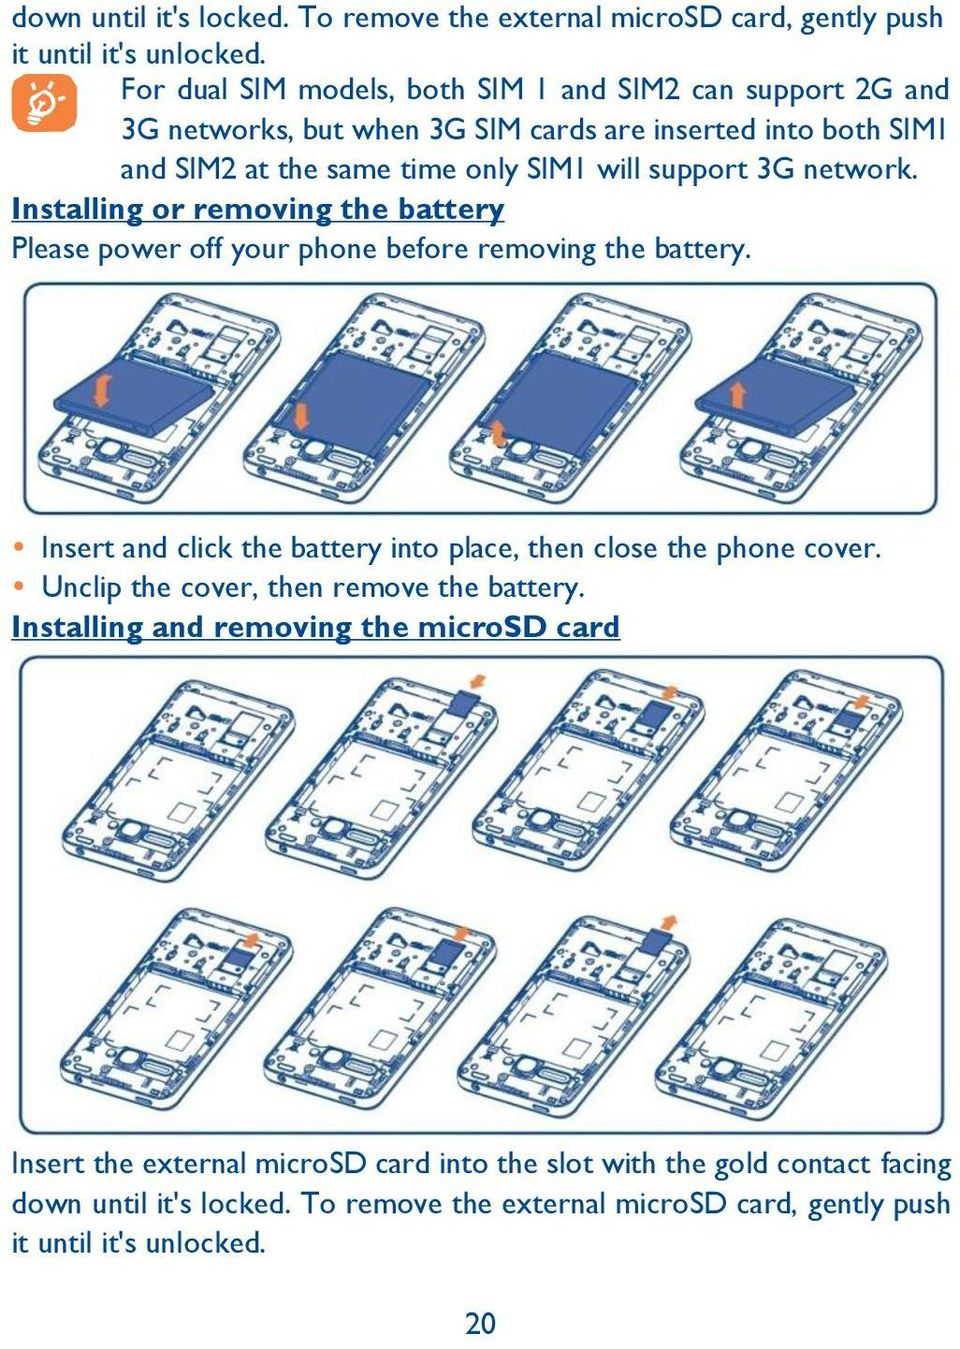 network. Installing or removing the battery Please power off your phone before removing the battery. Insert and click the battery into place, then close the phone cover.